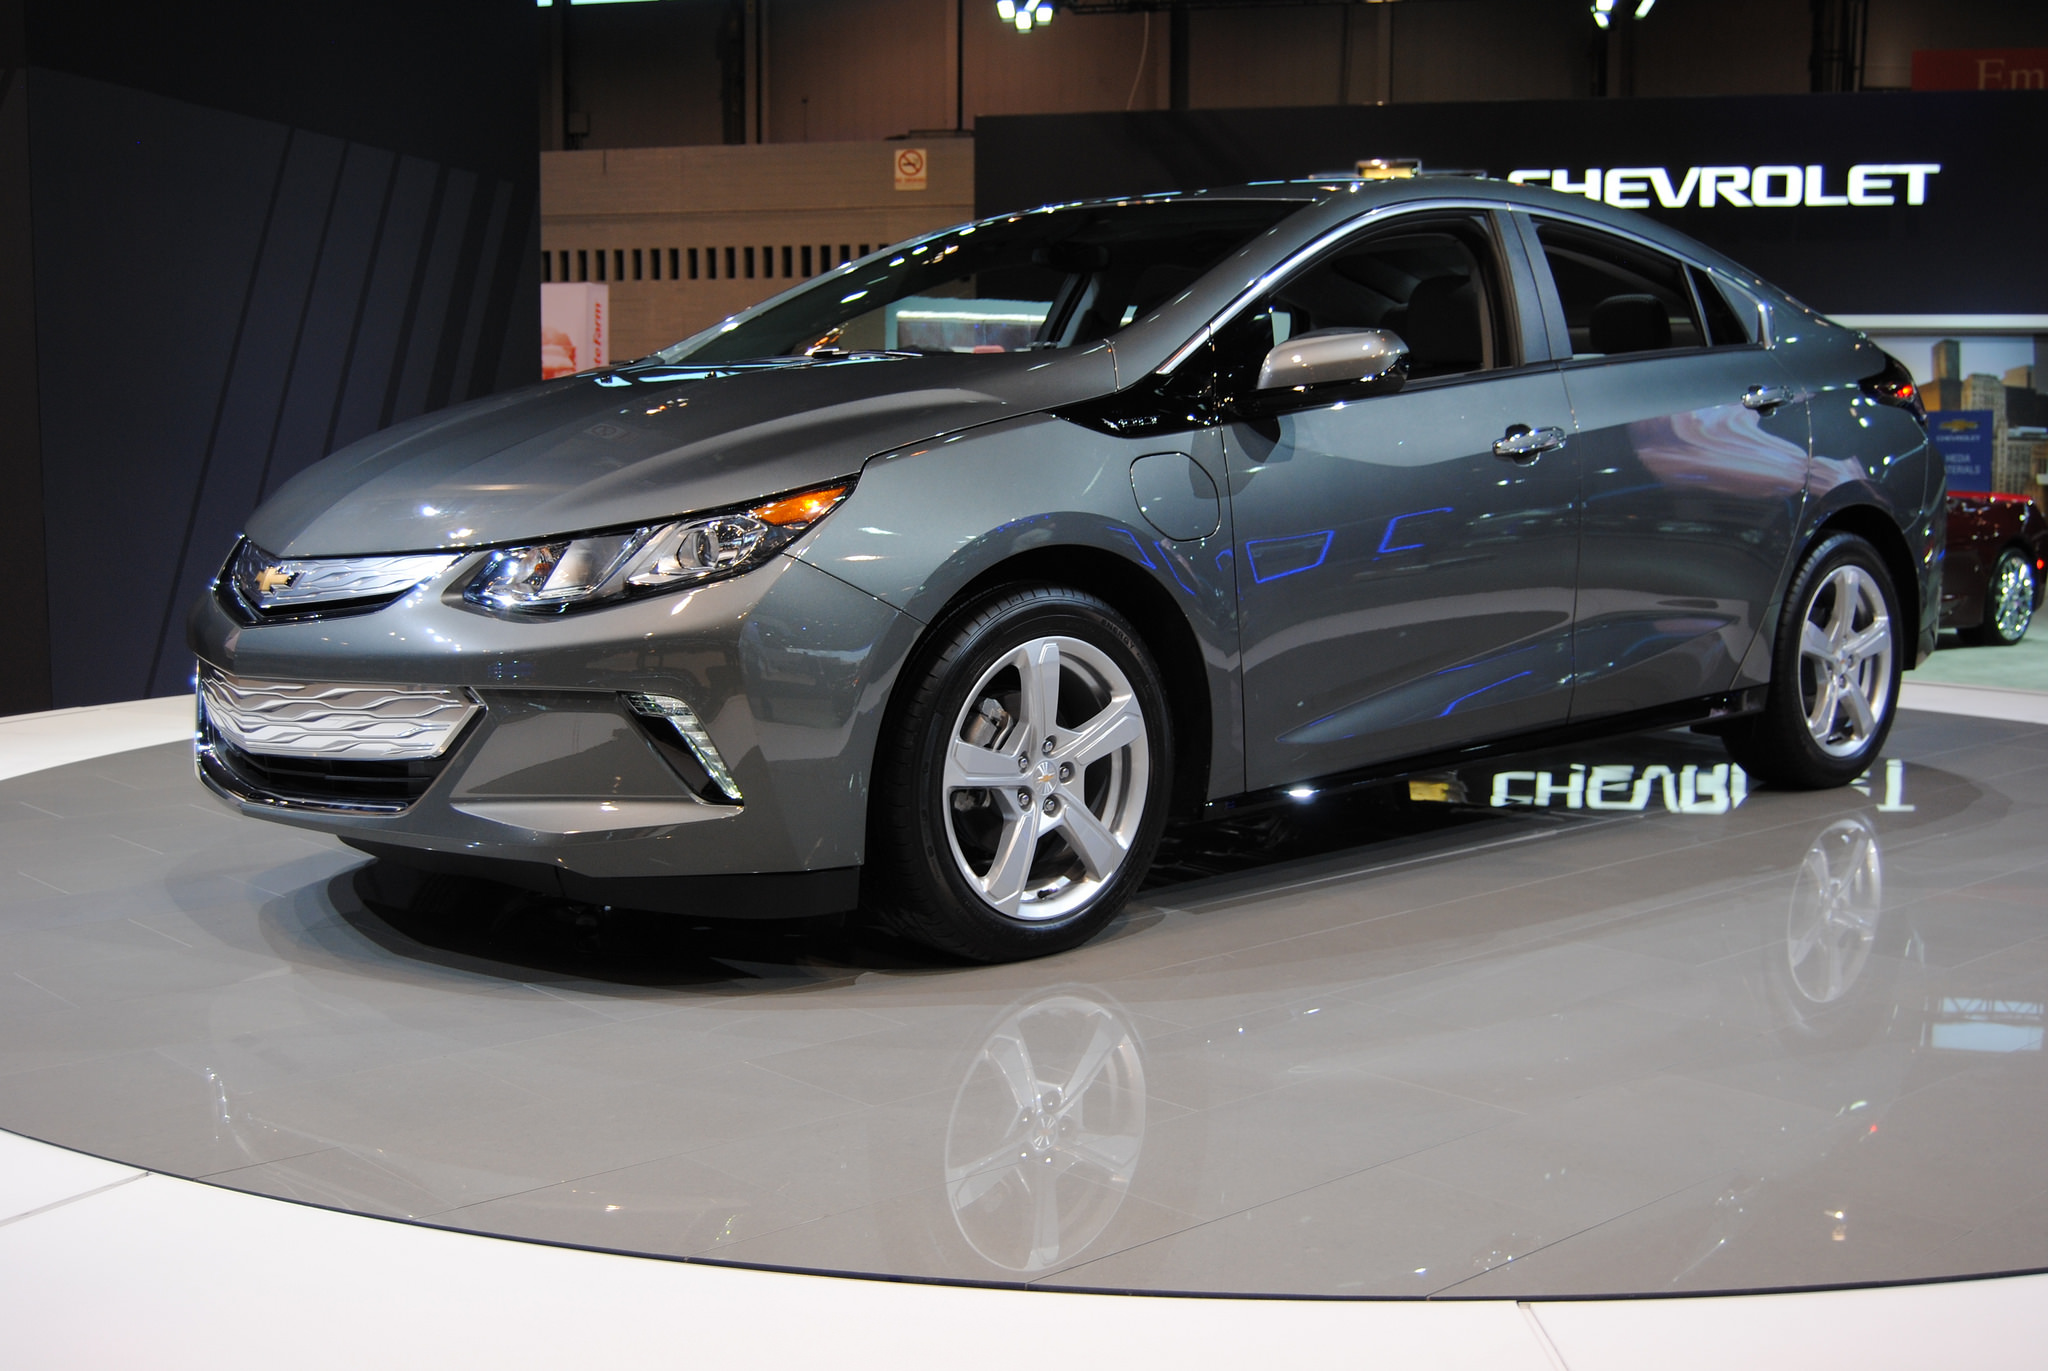 2017 chevrolet volt overview the news wheel. Black Bedroom Furniture Sets. Home Design Ideas